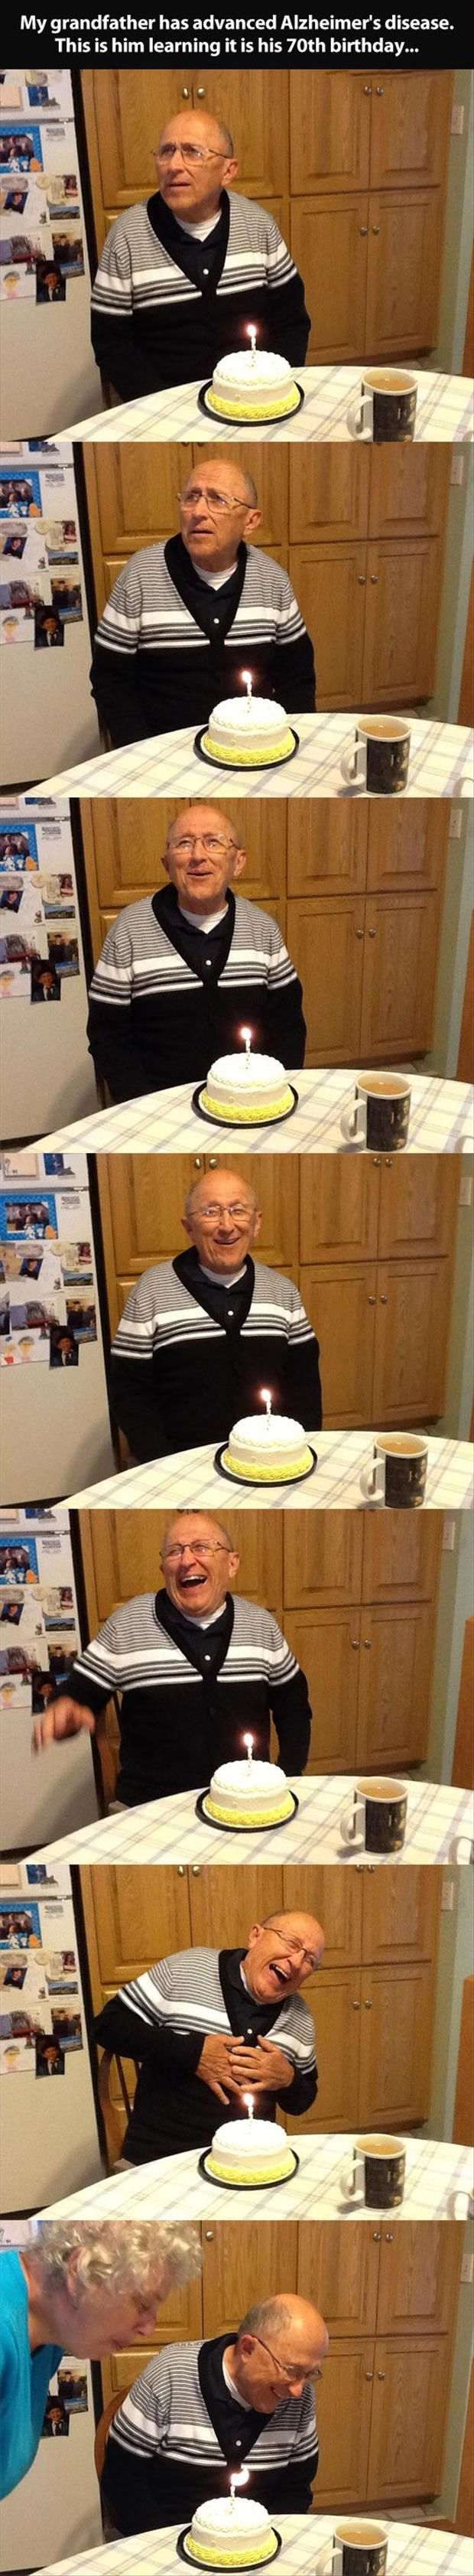 Awww <3: Face, Old Mans, Sweet, Humanity Restored, Heart Warming, So Happy, My Heart, 70Th Birthday